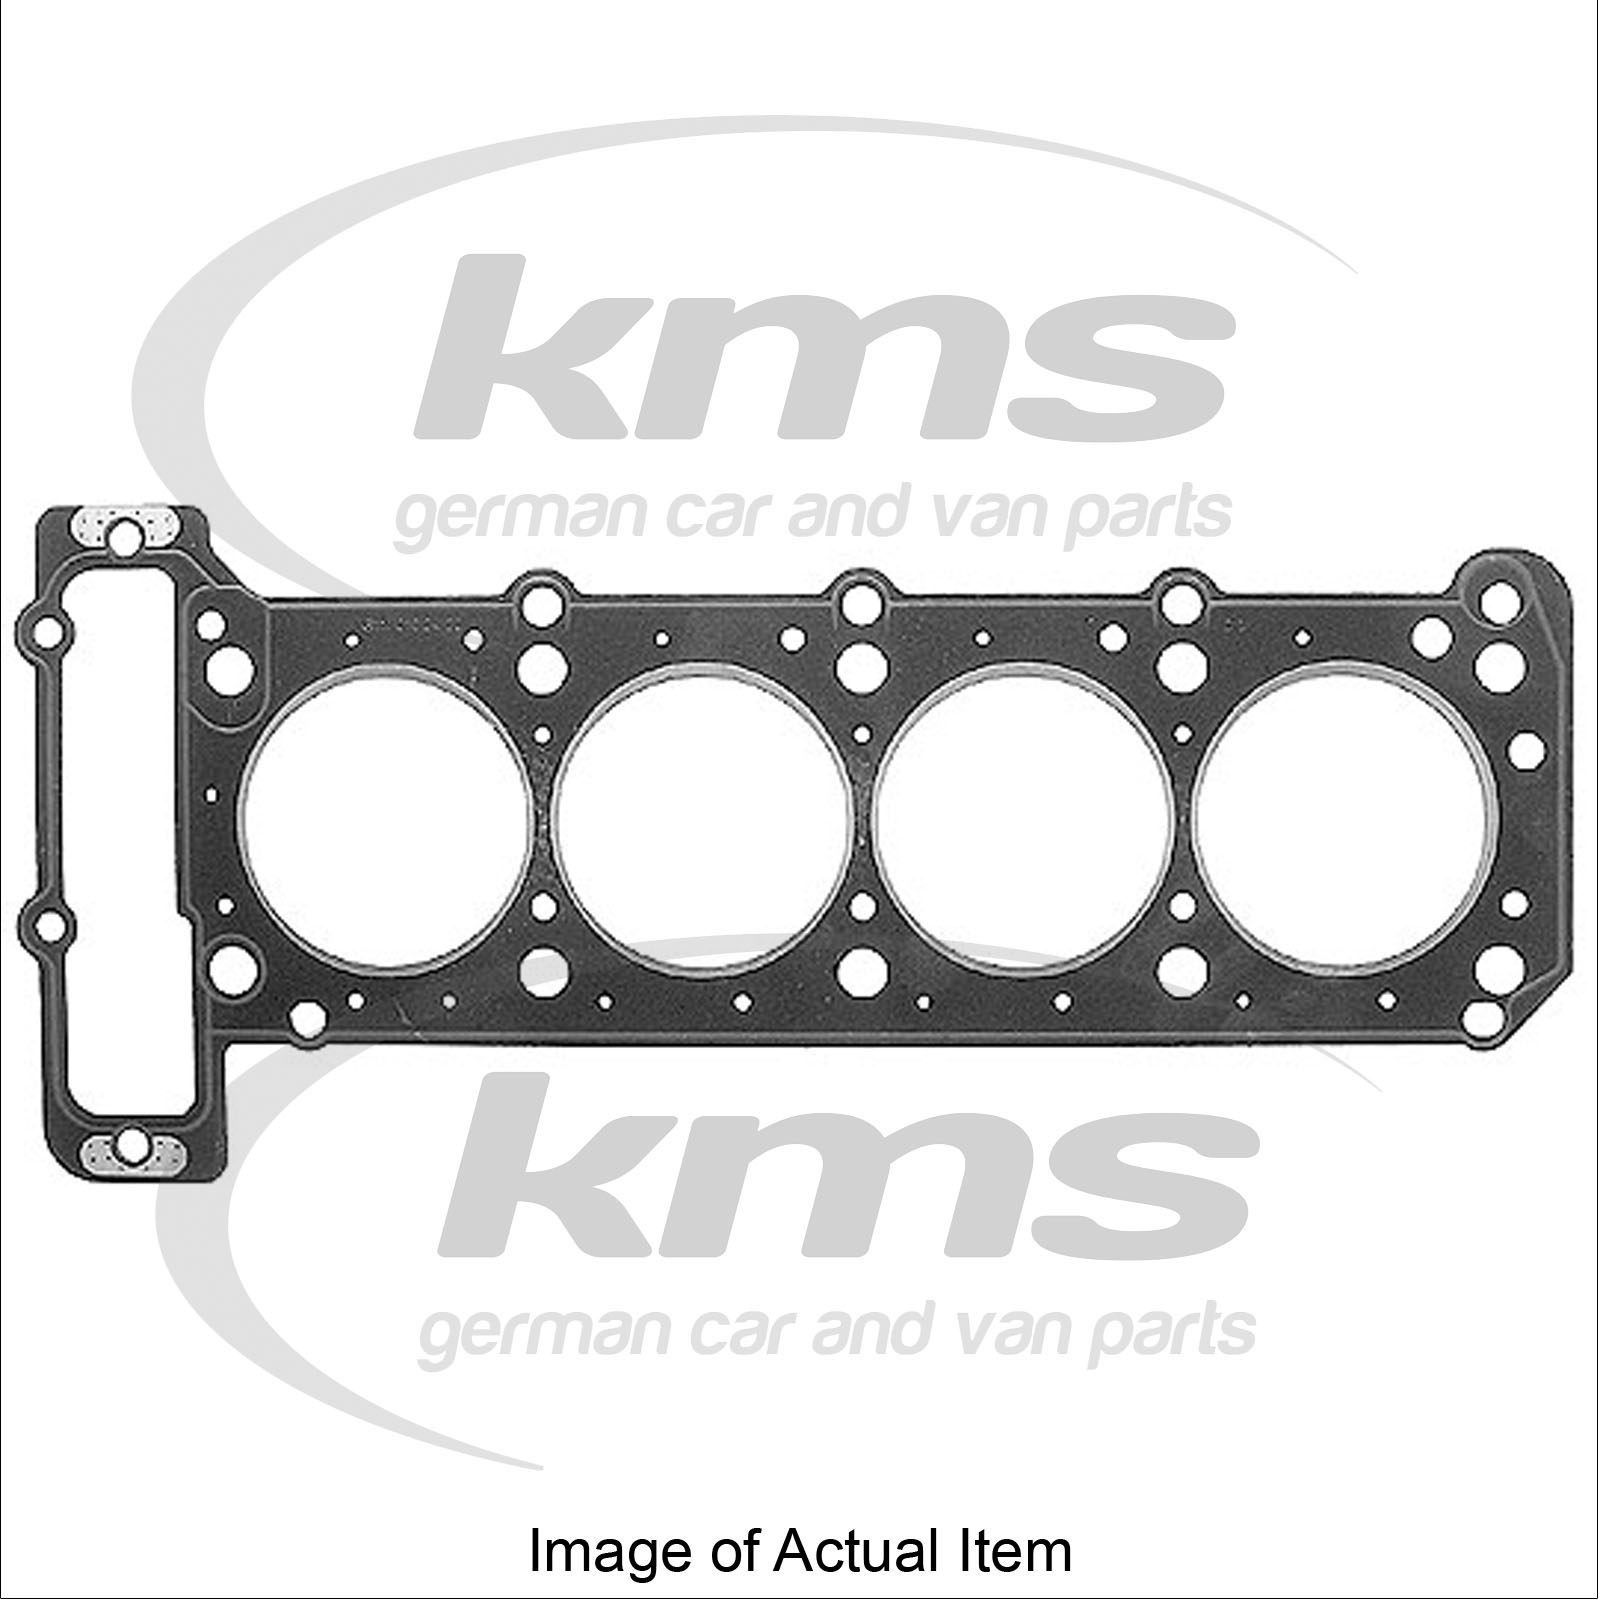 HEAD GASKET Mercedes Benz C Class Estate C180 S202 1.8L